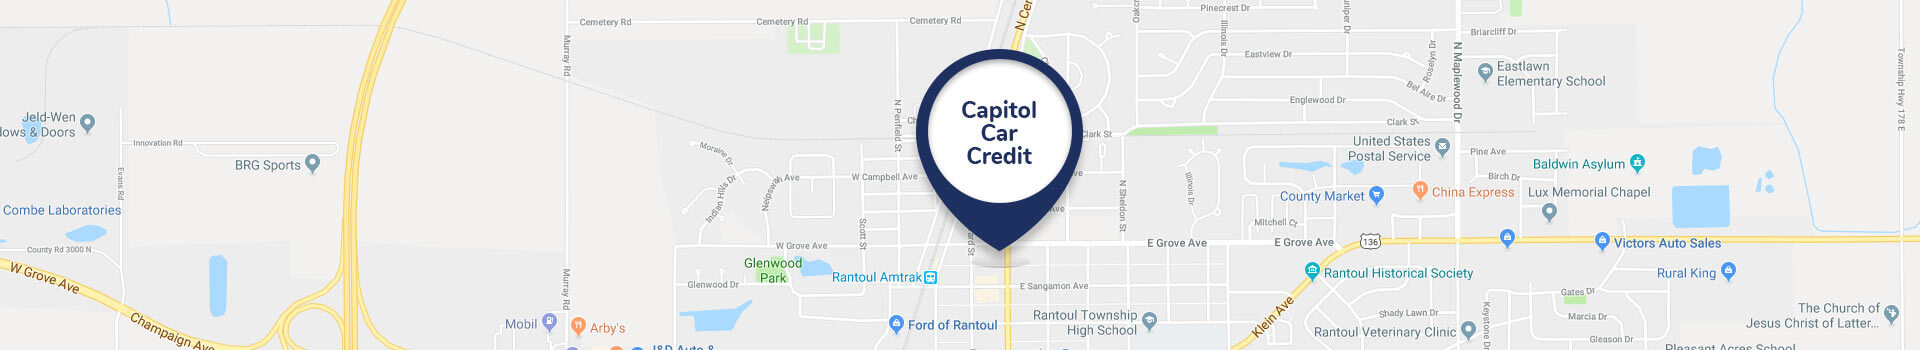 Capitol Car Credit Map